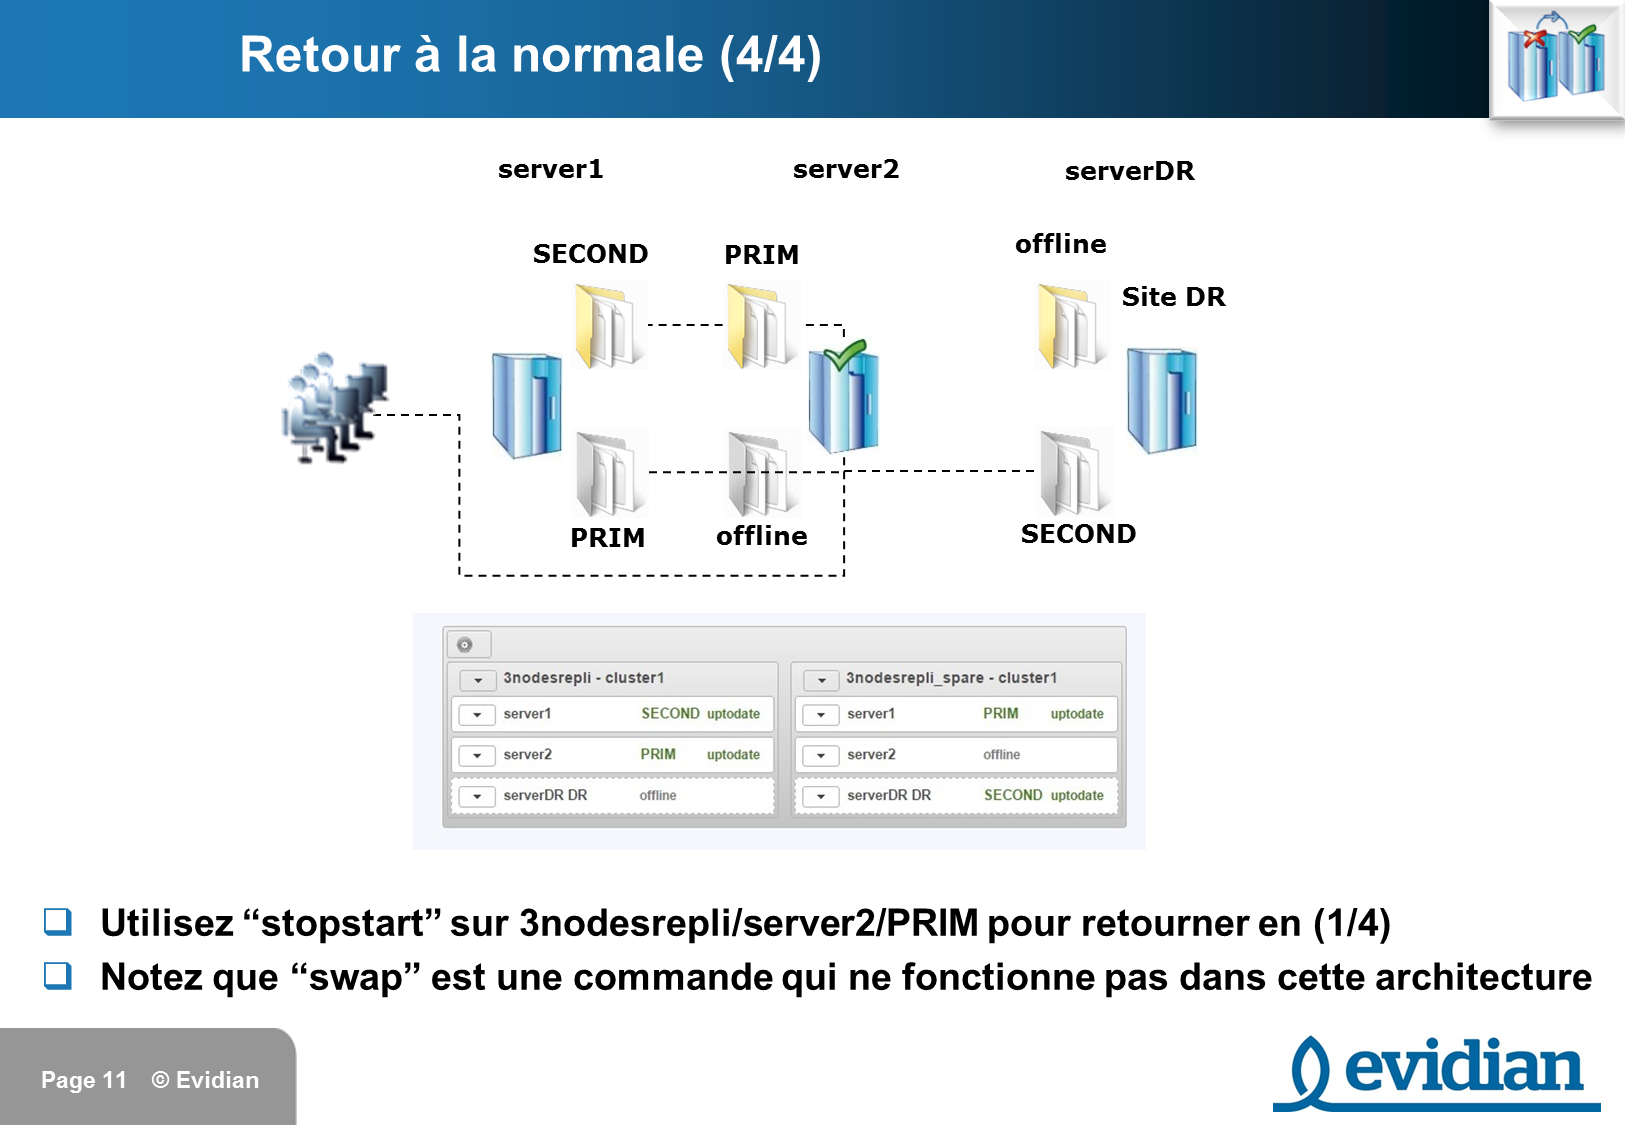 Formation à Evidian SafeKit - Réplication à 3 nœuds  - Slide 11